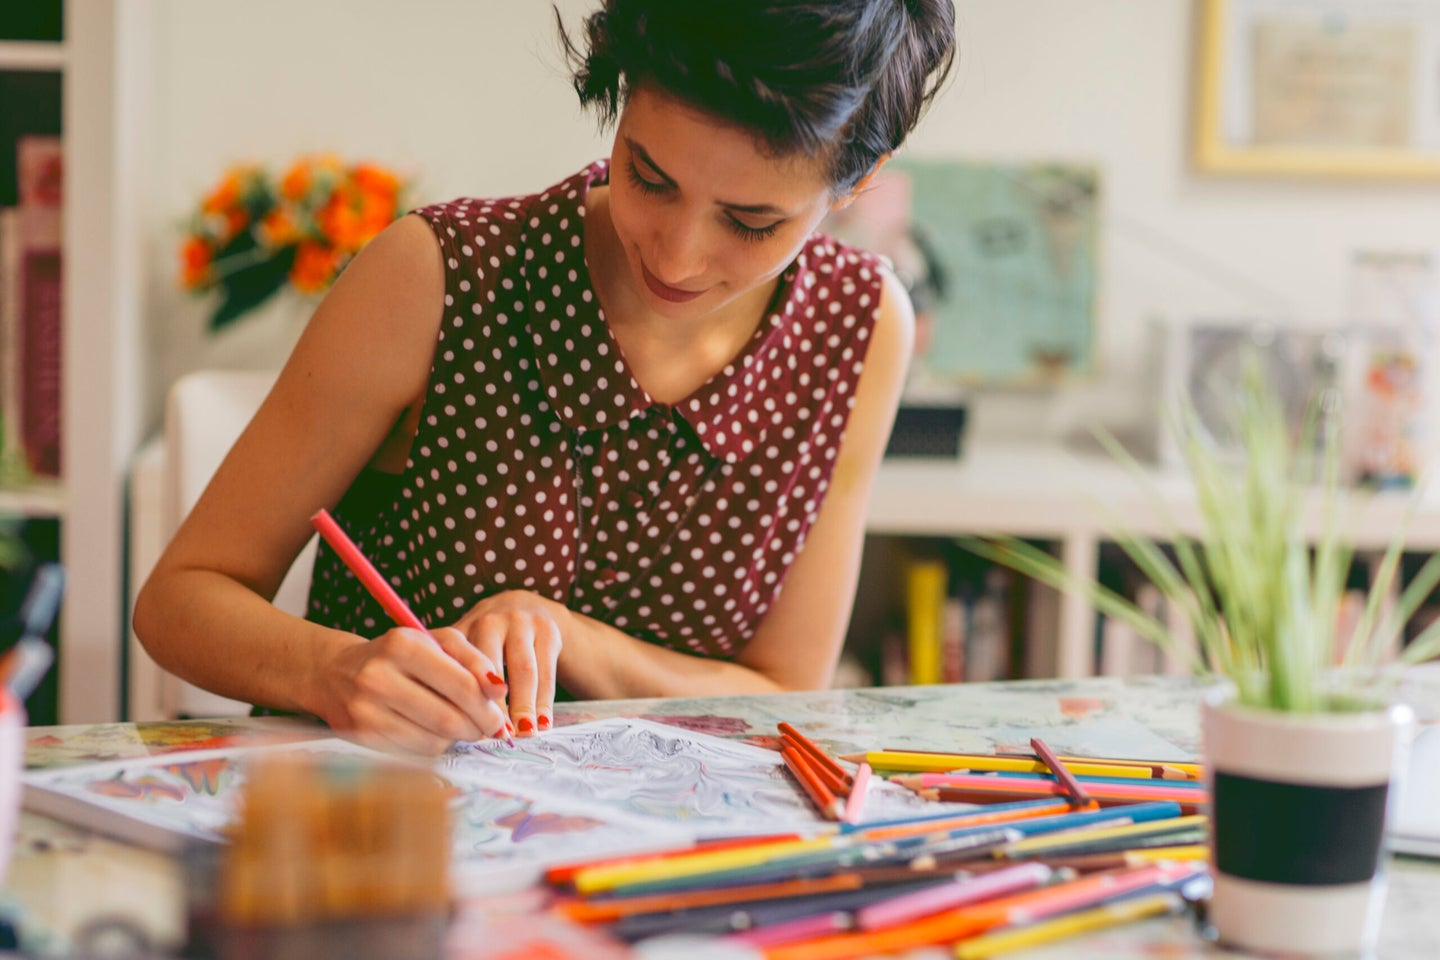 Young smiling woman coloring book for adults in her office or apartment, Enjoy coffee break while coloring book for adults. Adults Coloring Book.